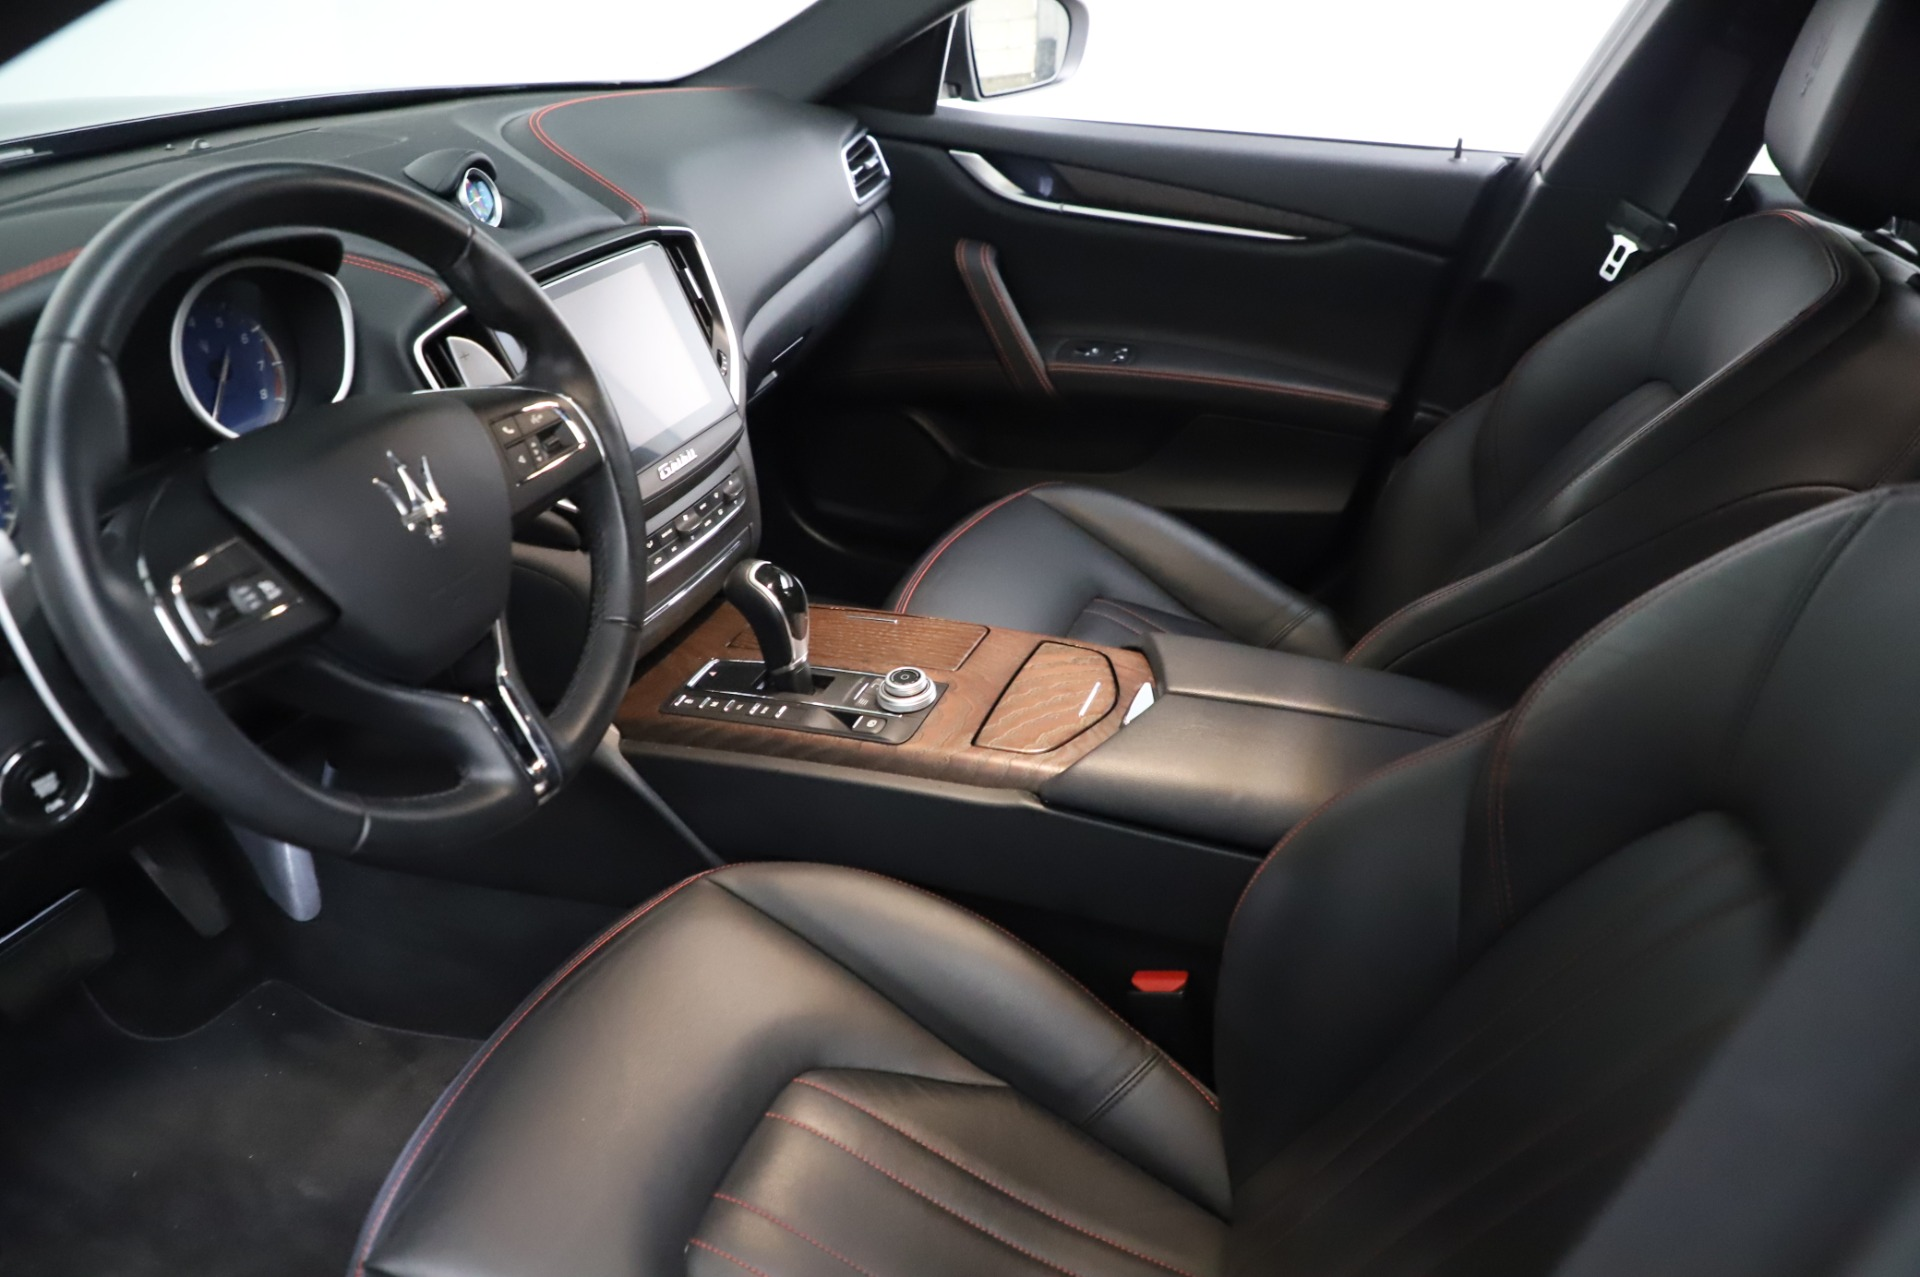 Used 2018 Maserati Ghibli S Q4 For Sale In Westport, CT 1698_p14